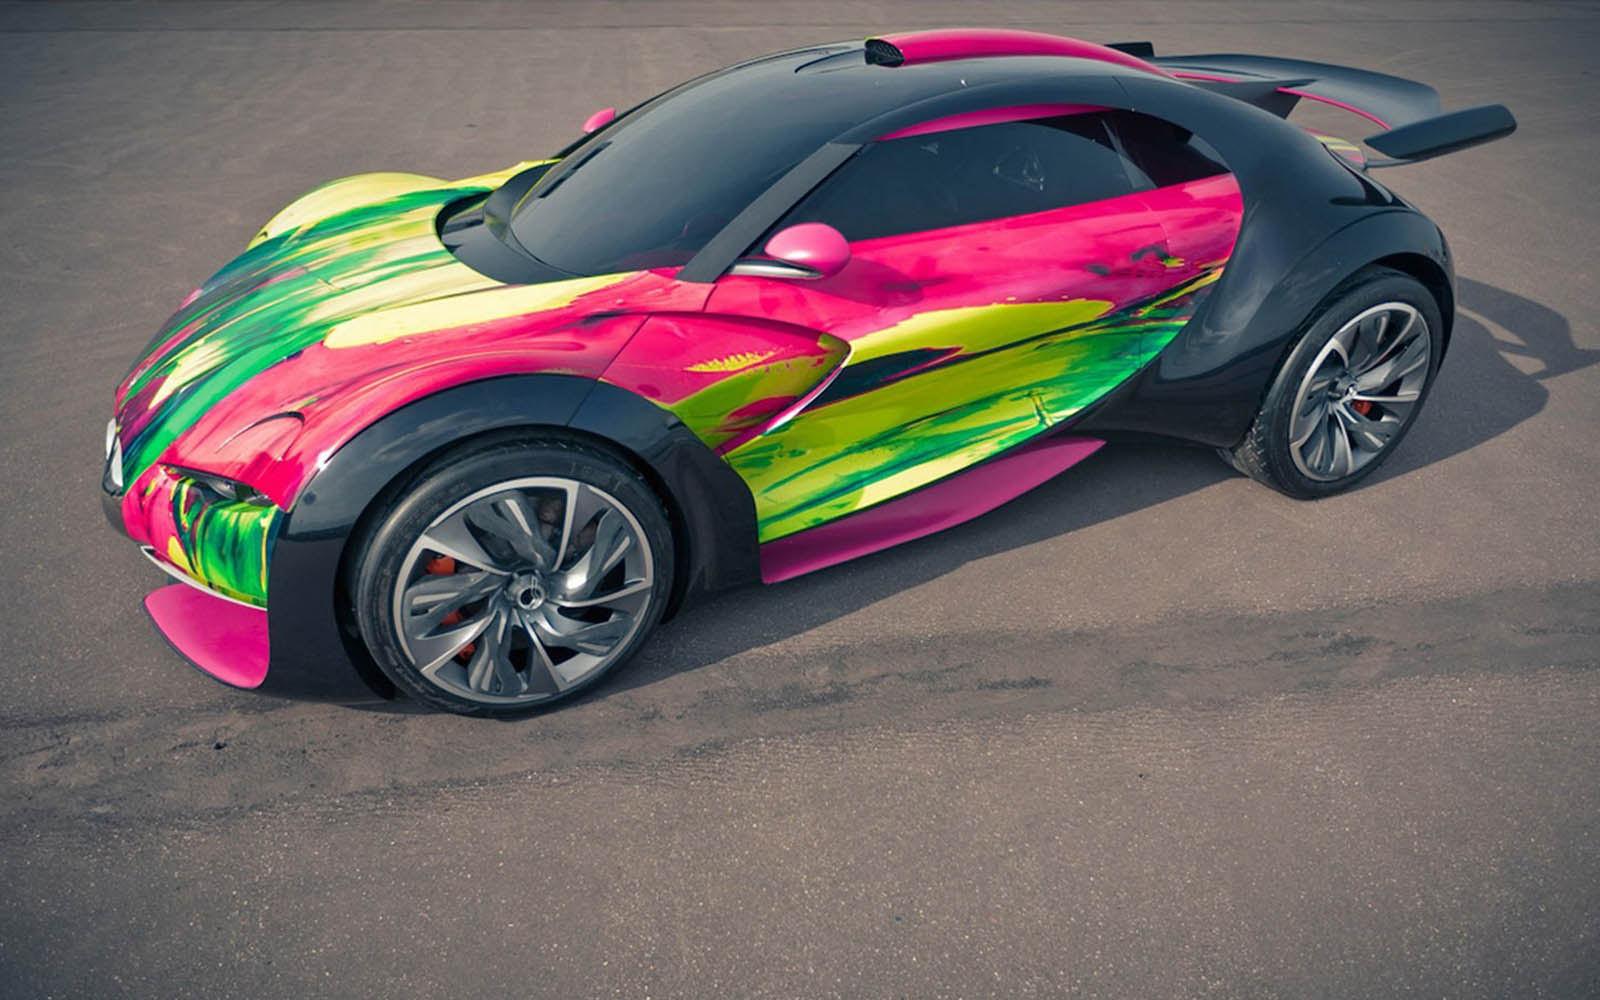 Wallpapers citroen survolt concept car wallpapers for Car paint designs pictures